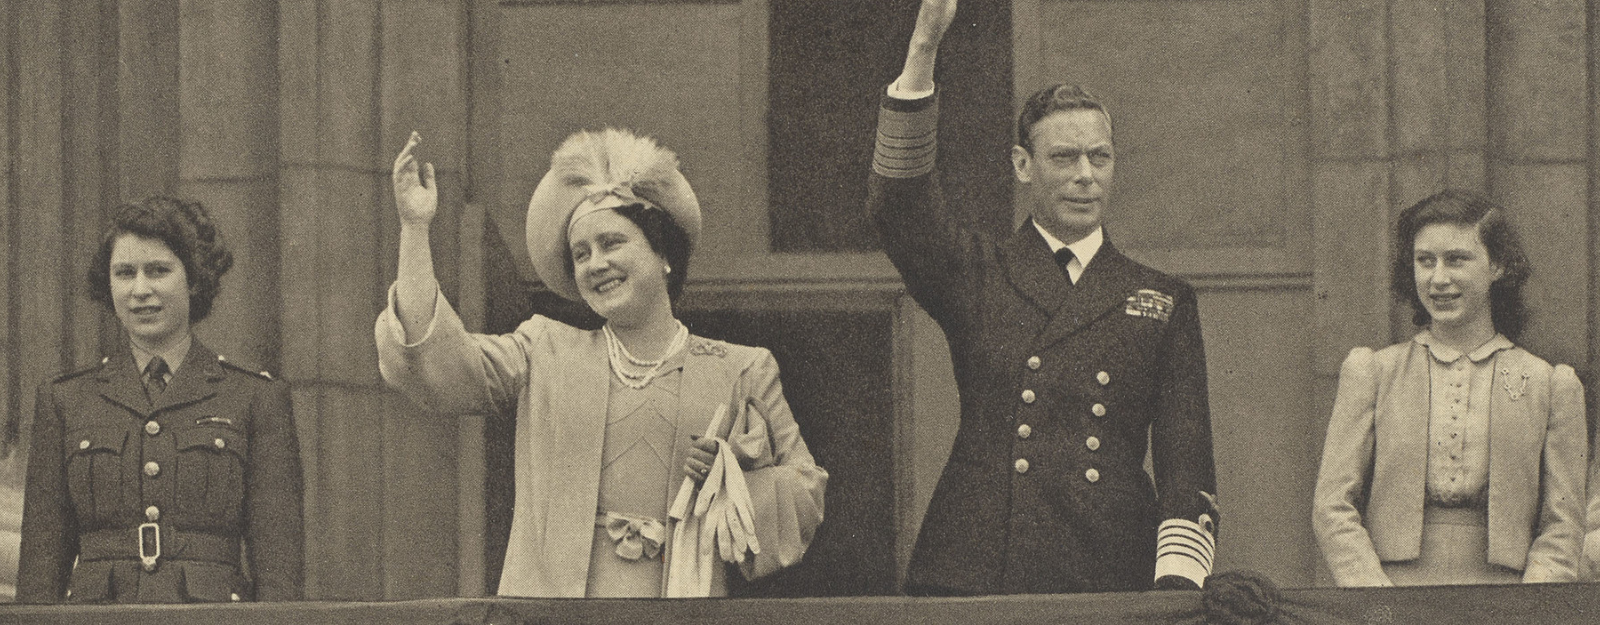 Photograph of King George VI and family during VE Day